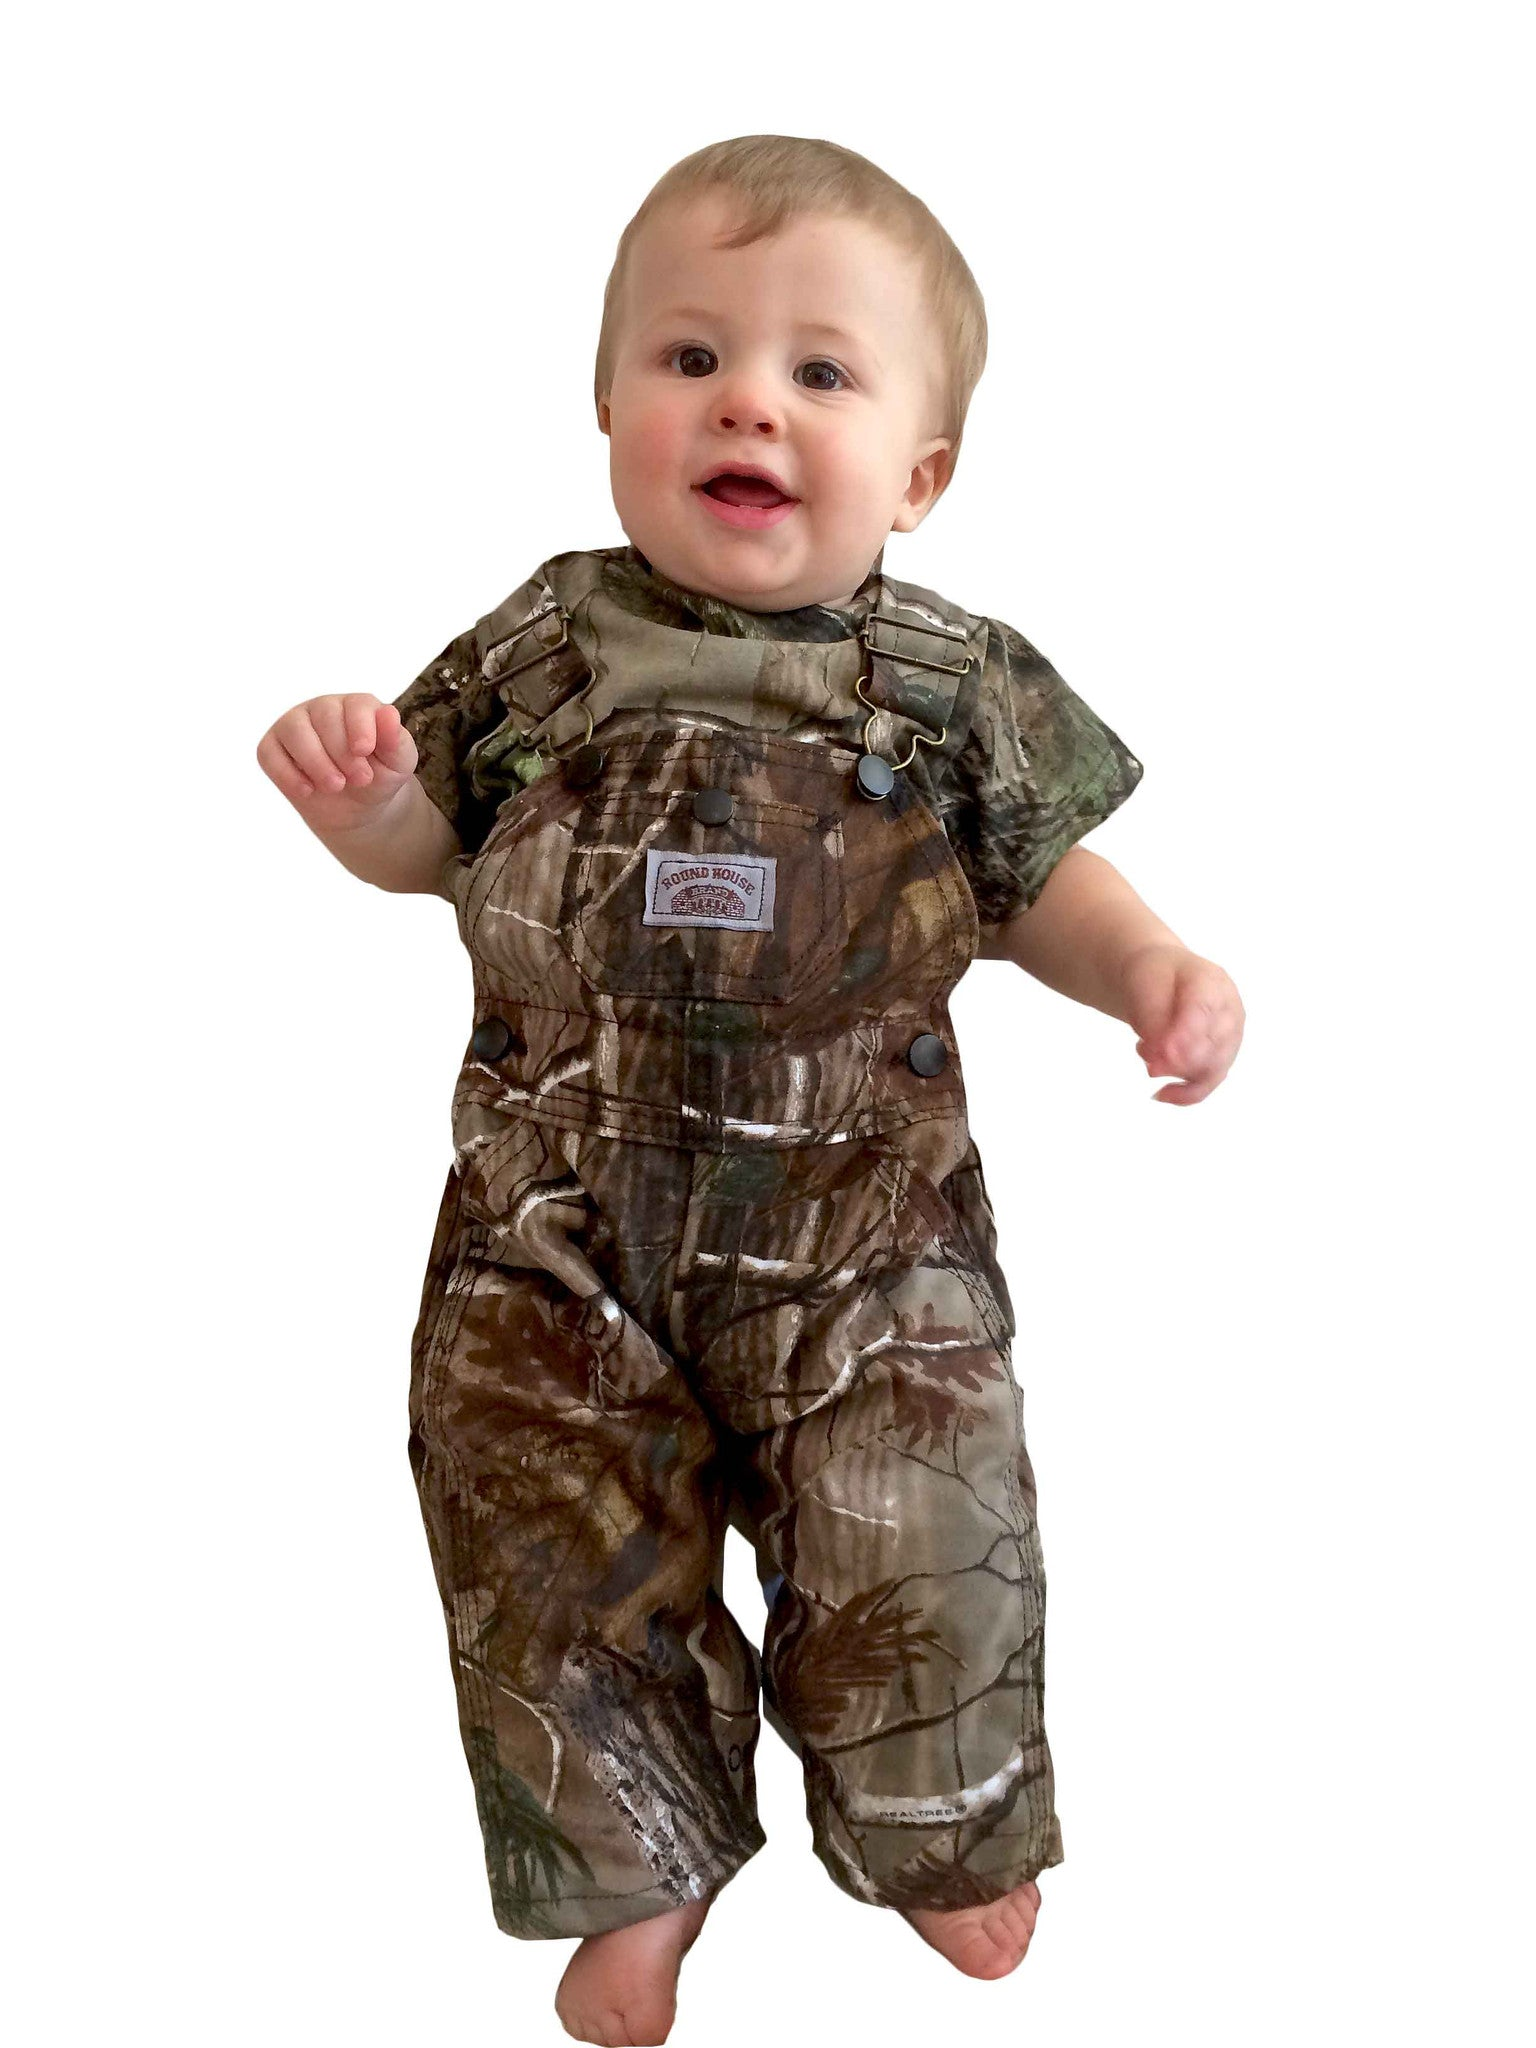 Realtree Camo Camouflage Toddler or Boys Long Sleeve T-Shirt Kids